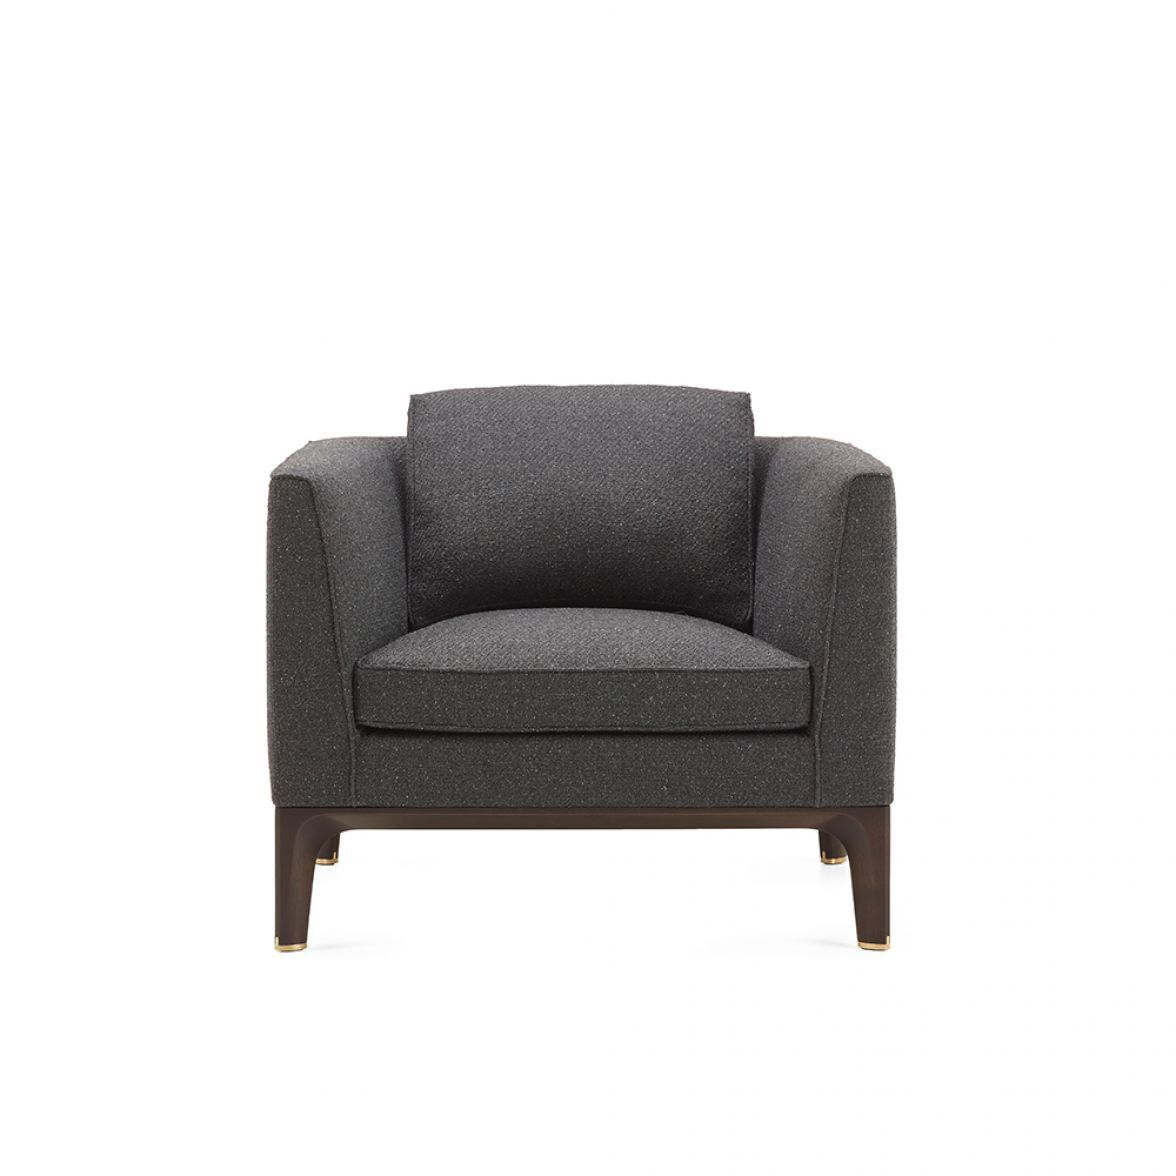 Don Giovanni armchair фото цена